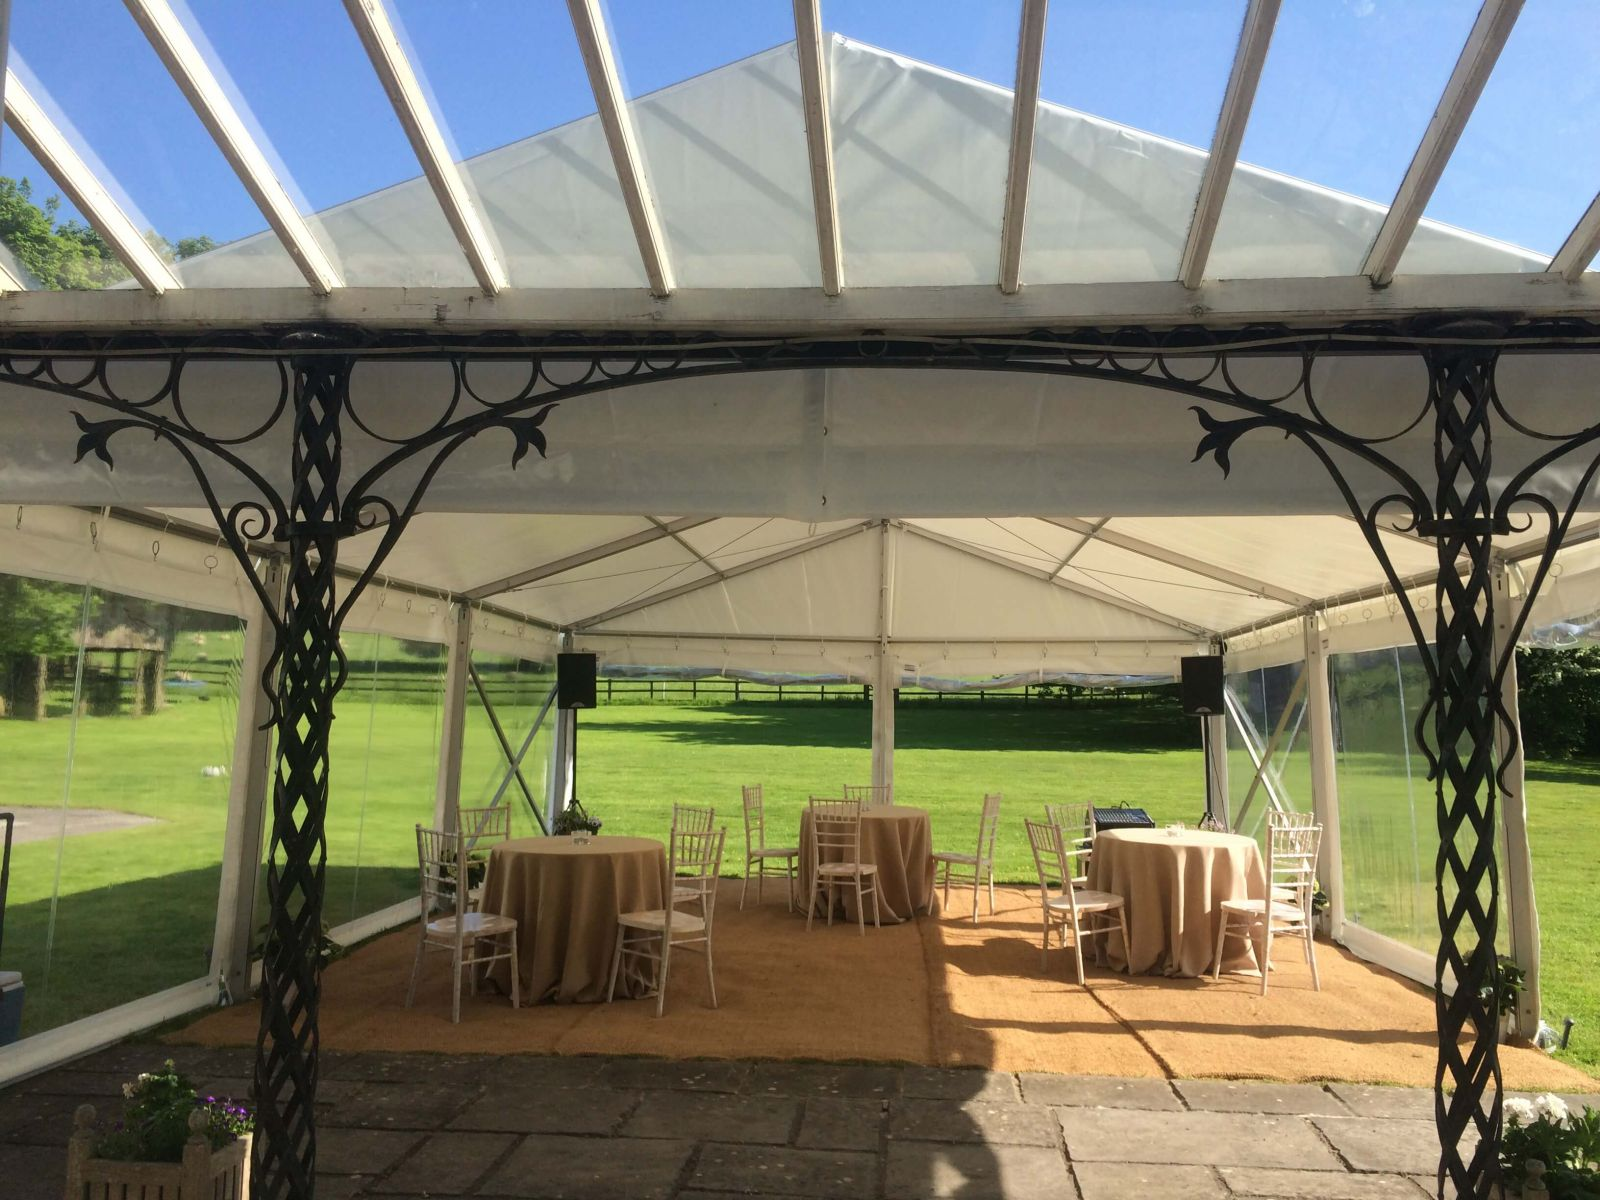 Matting floor for a rustic, casual marquee event in Bristol